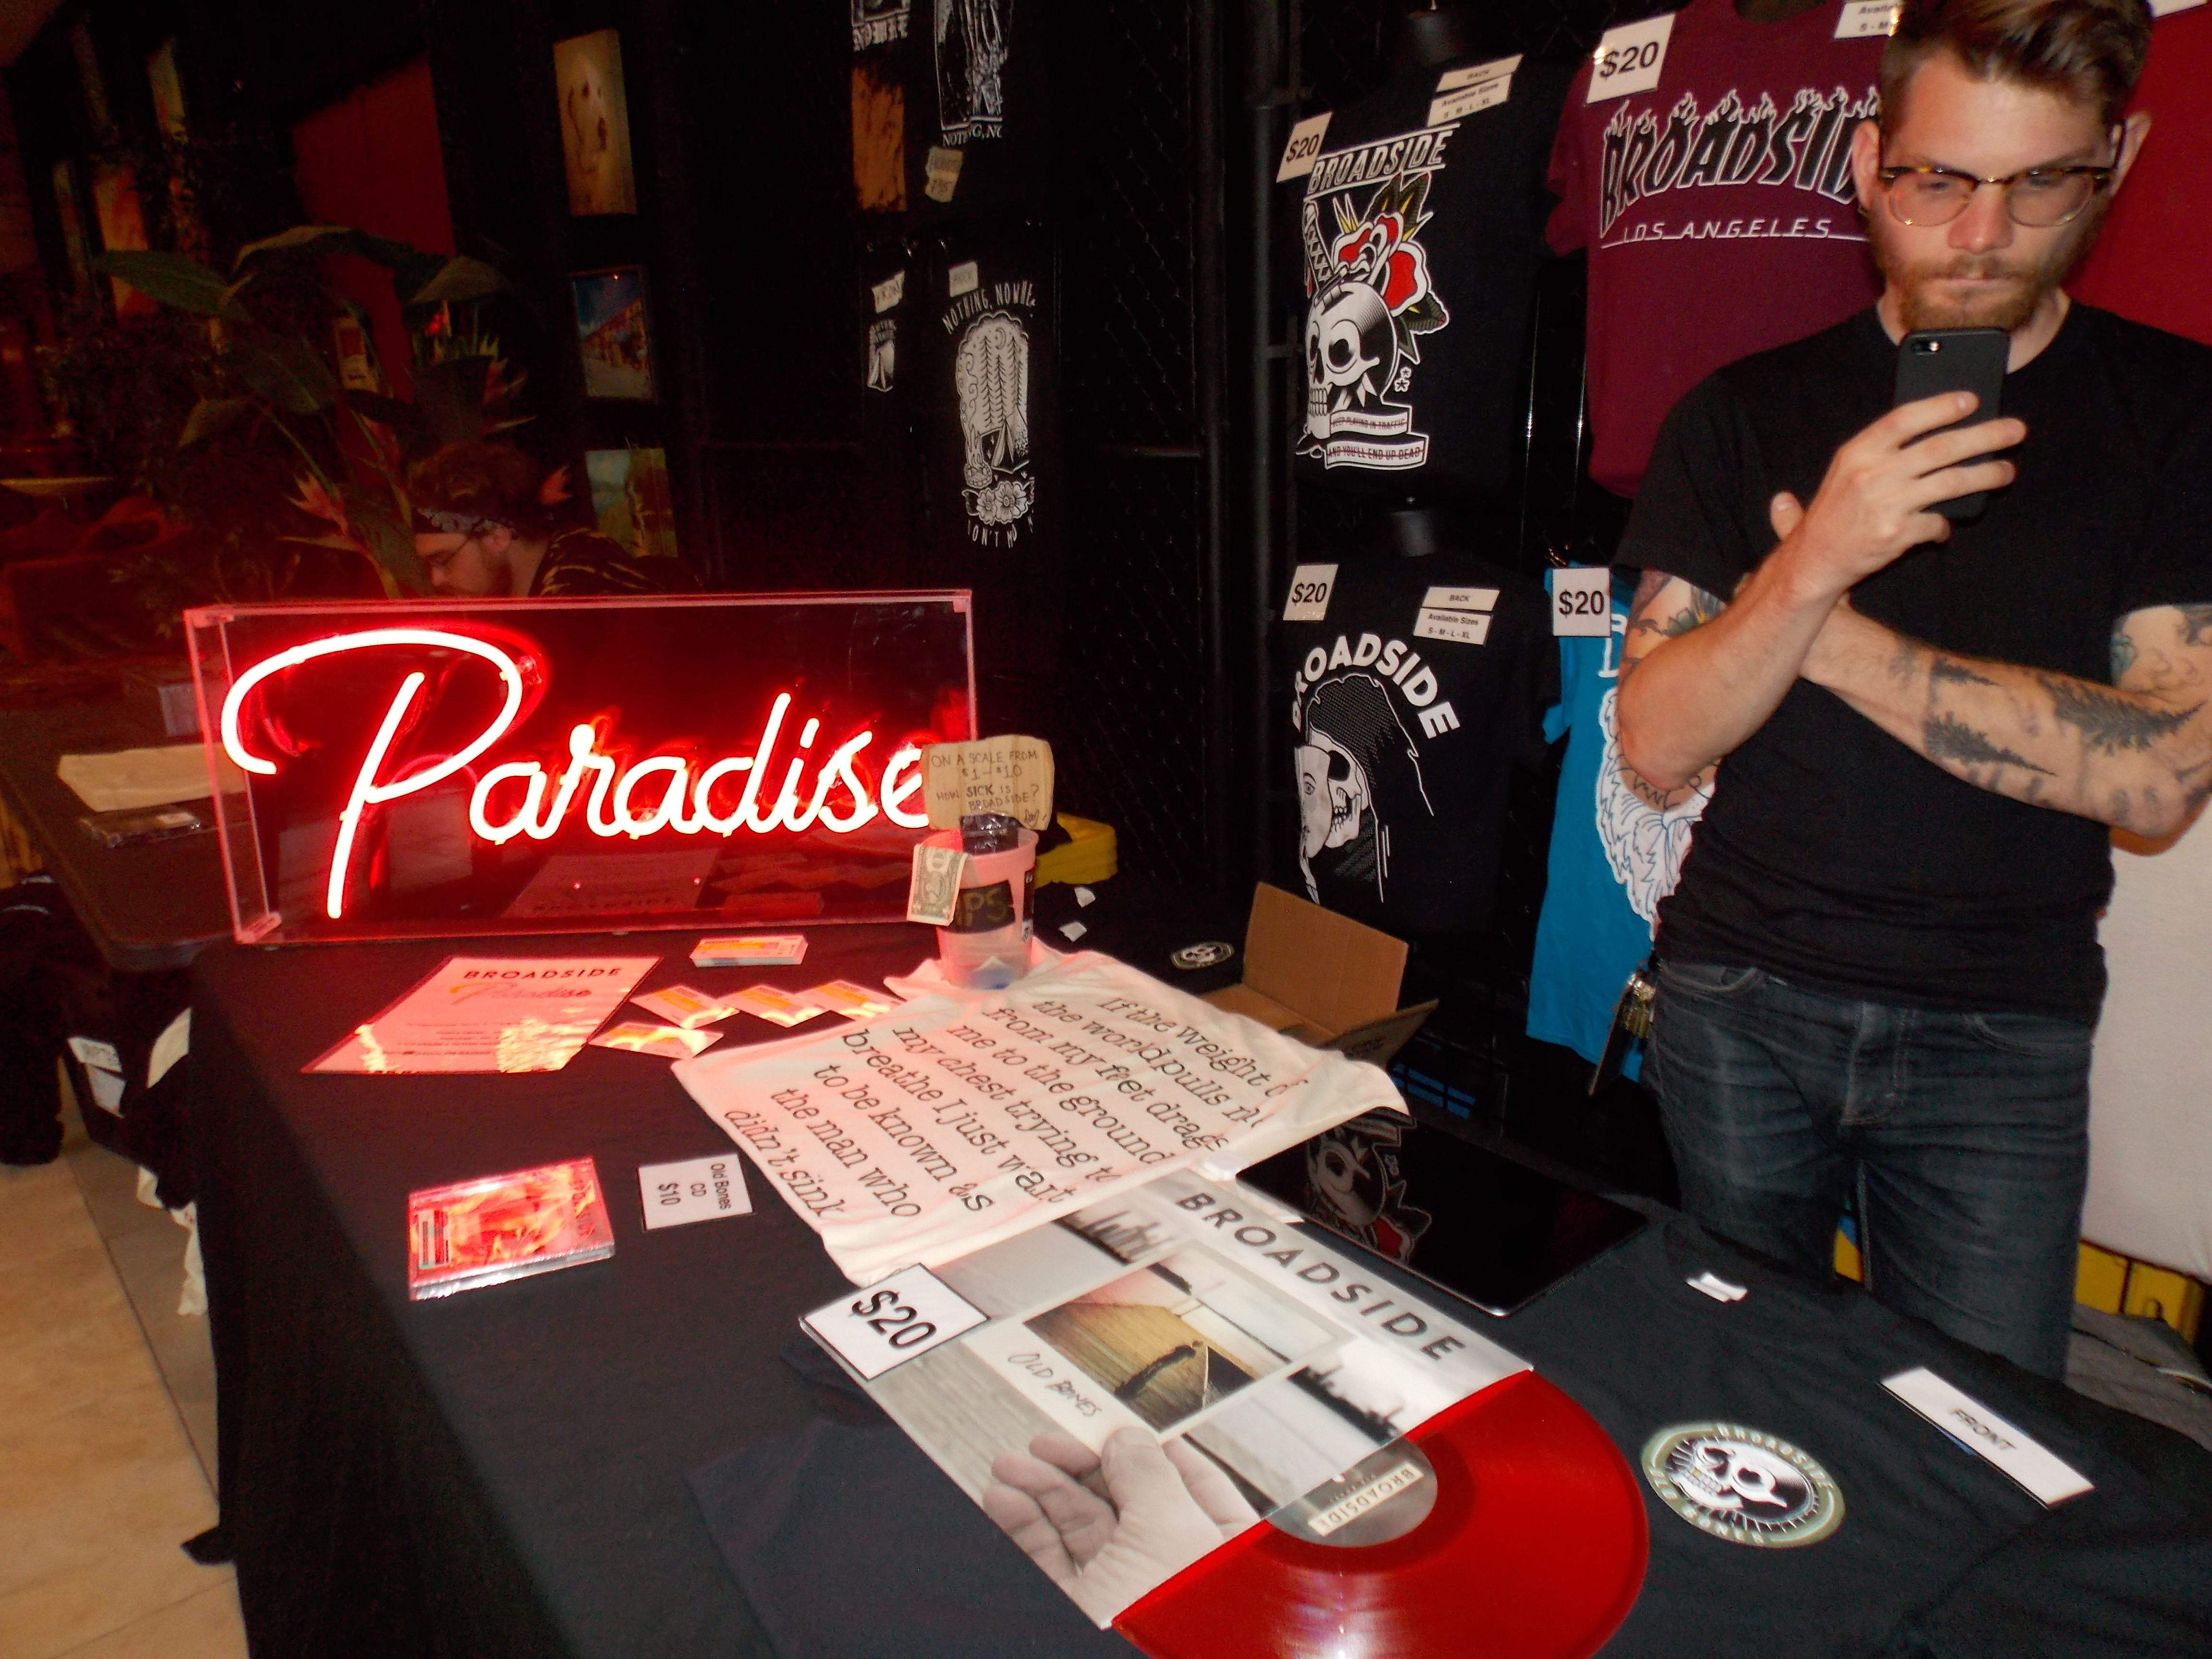 Broadside's merch table